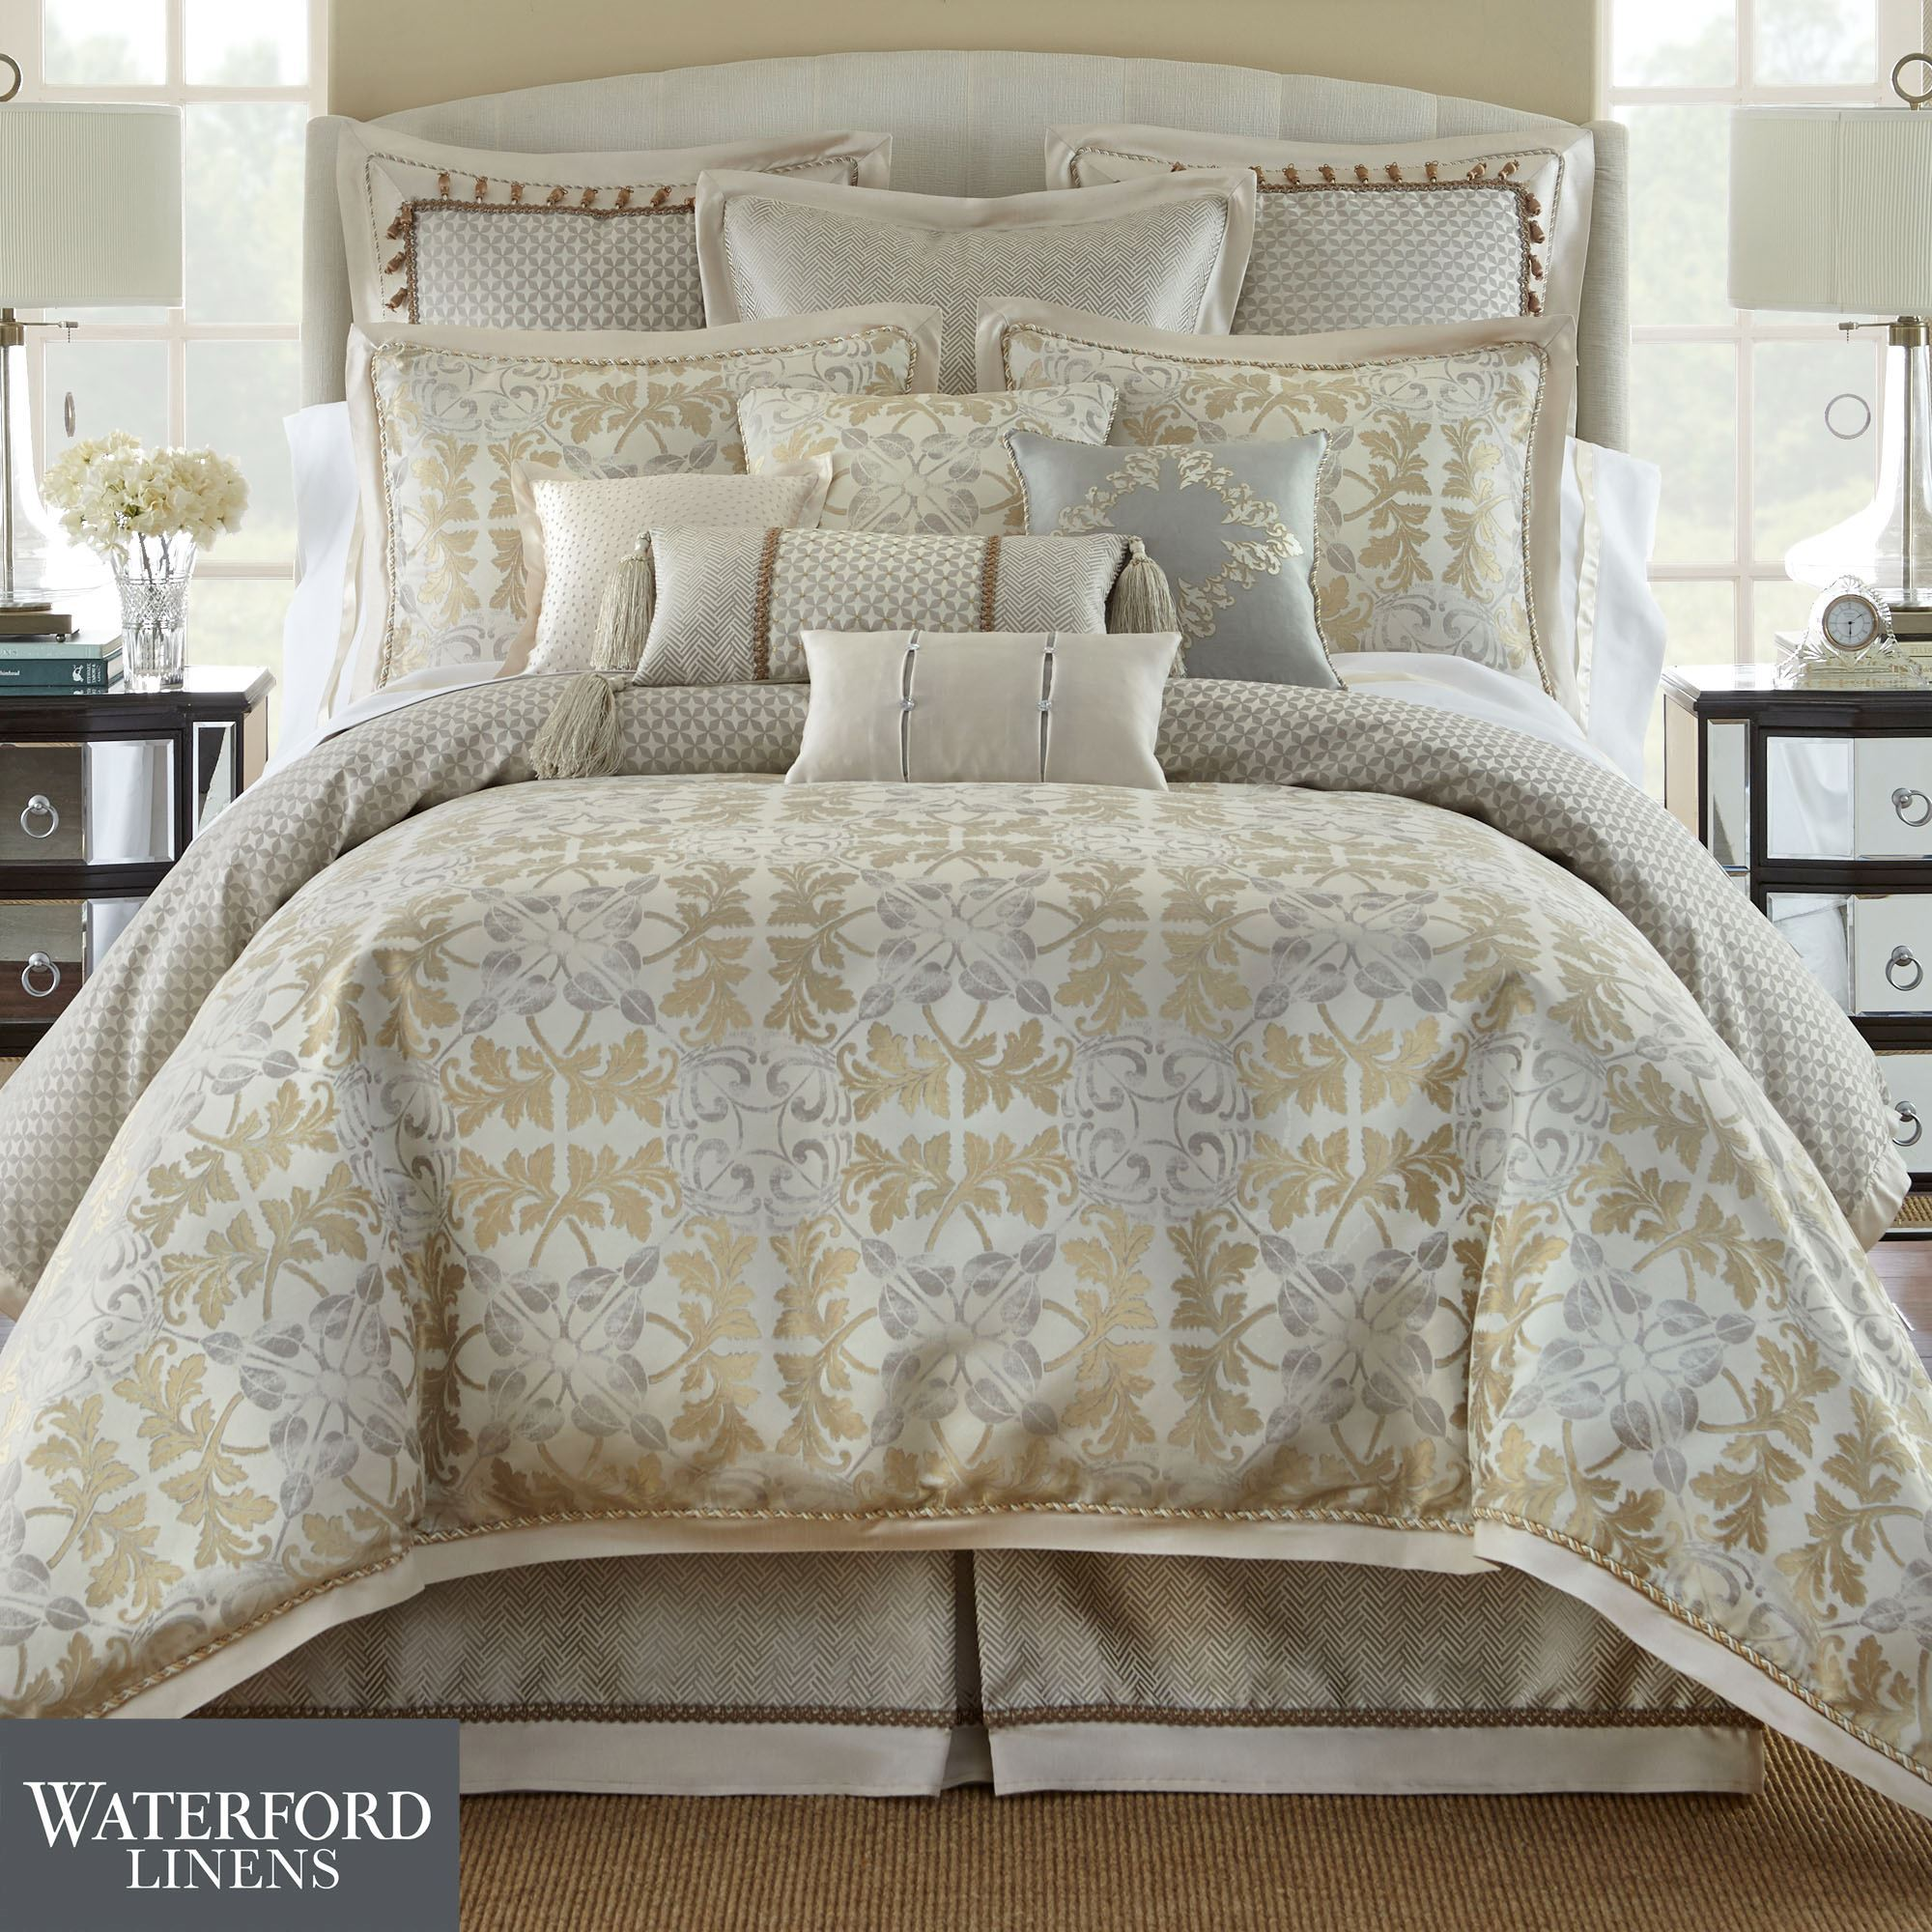 Olivette Comforter Bedding By Waterford Linens